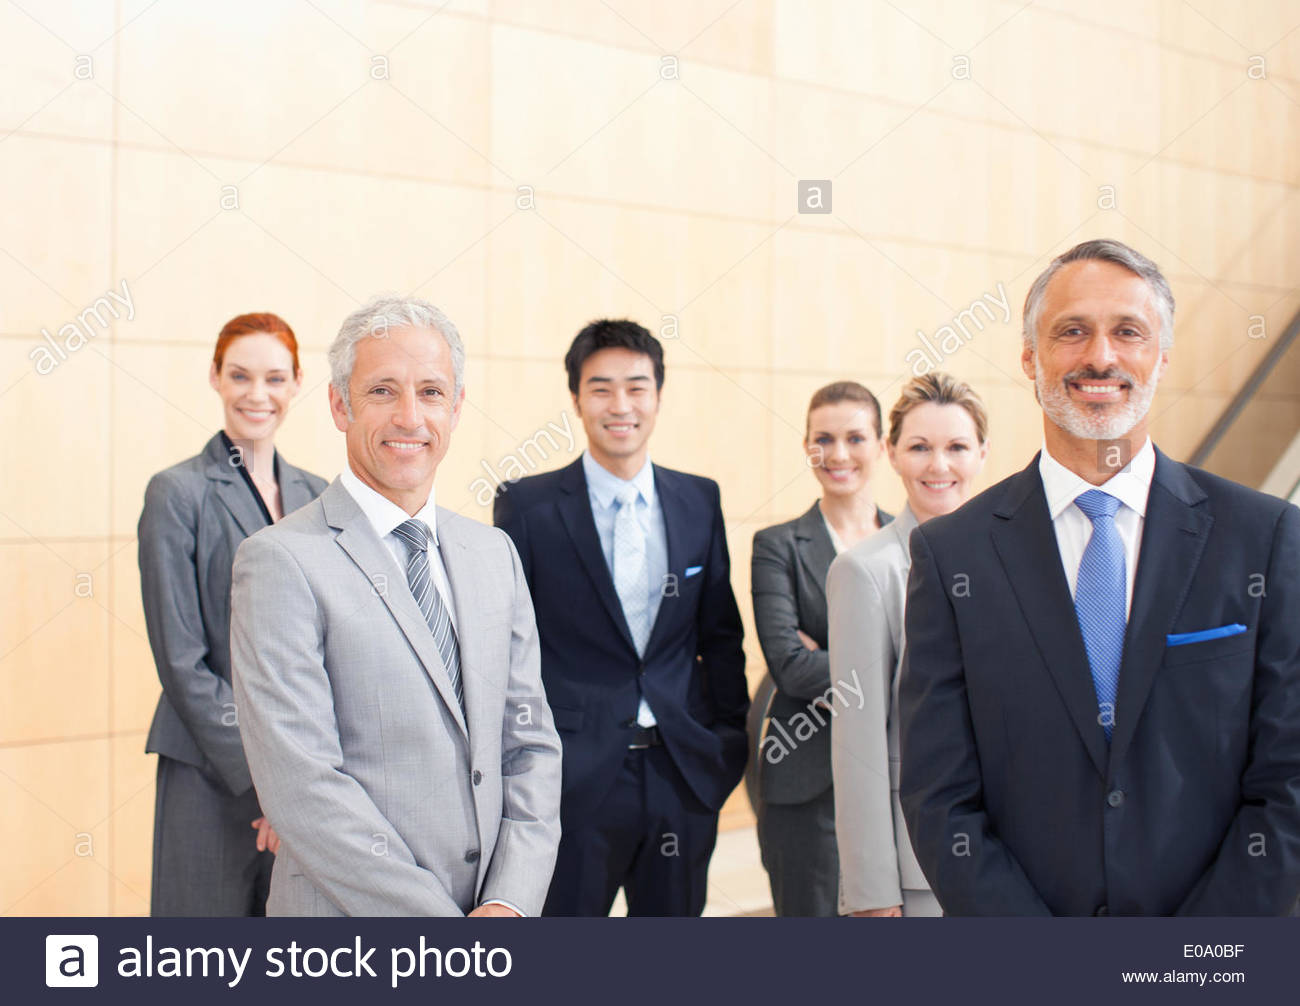 Business people smiling - Stock Image